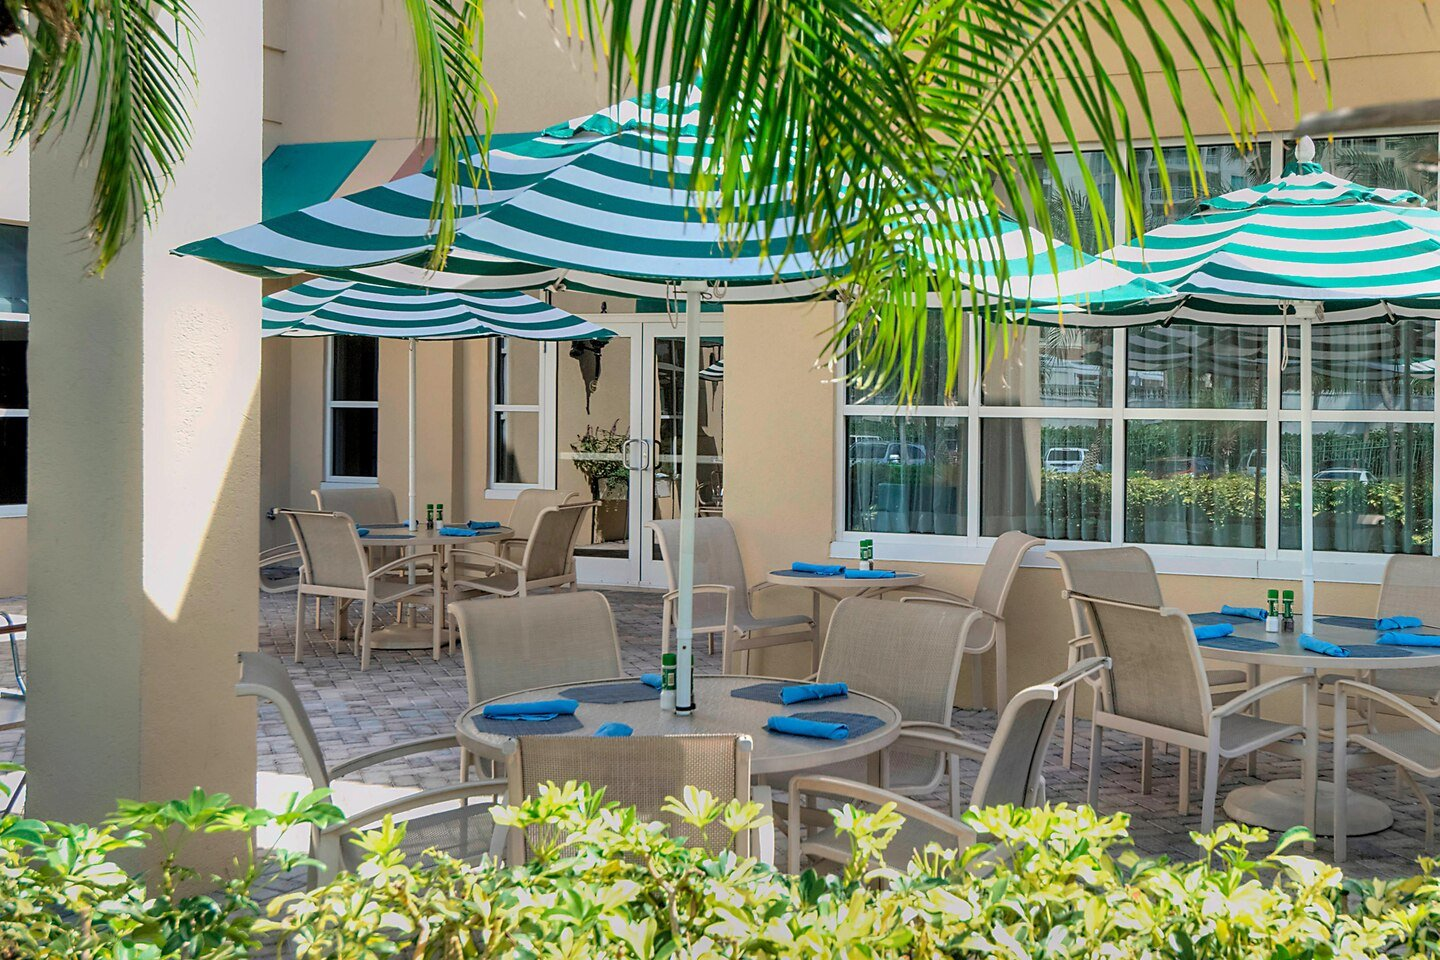 Outdoor tables and chairs with umbrellas for dining